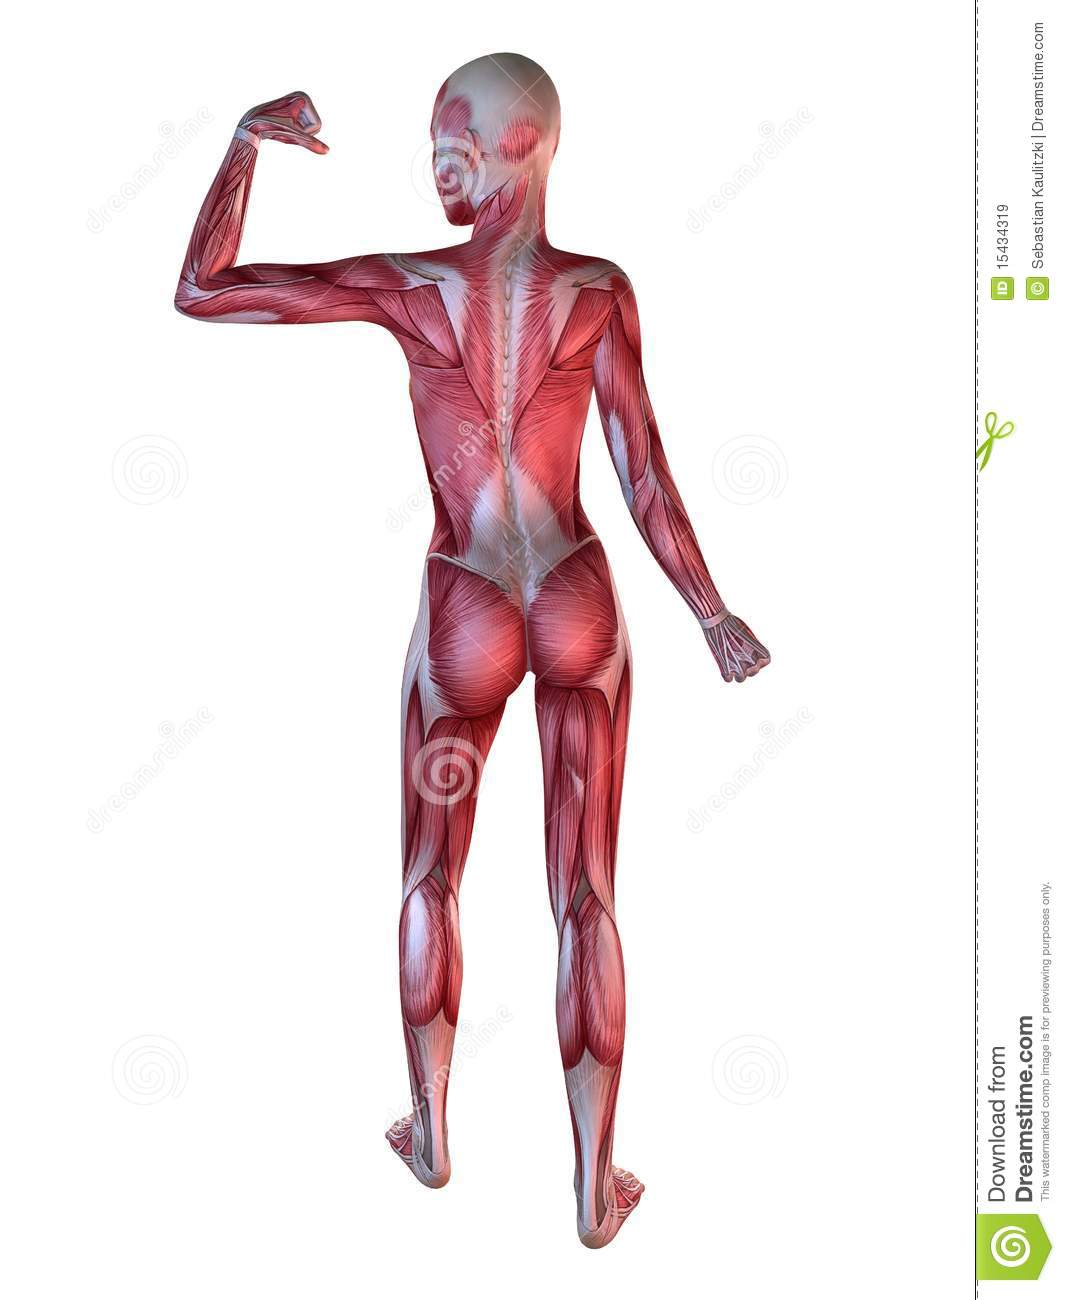 female muscular system royalty free stock images - image: 15434319, Muscles